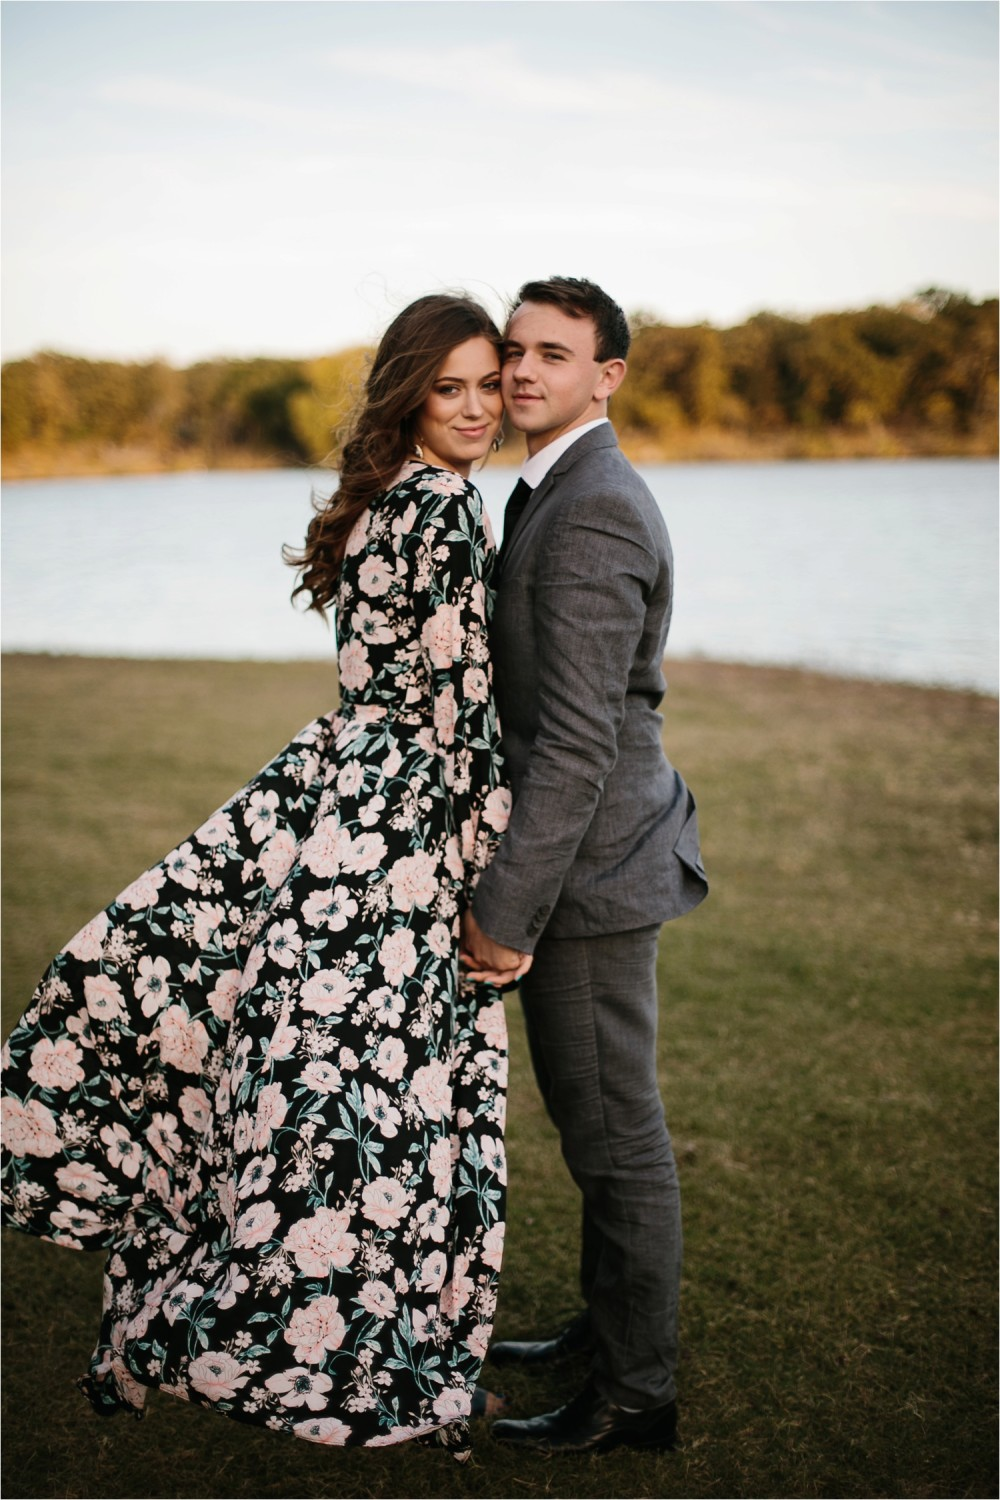 Aleta + Sabian __ a windy lakeside nature engagement session by North Texas Wedding Photographer Rachel Meagan Photography _17